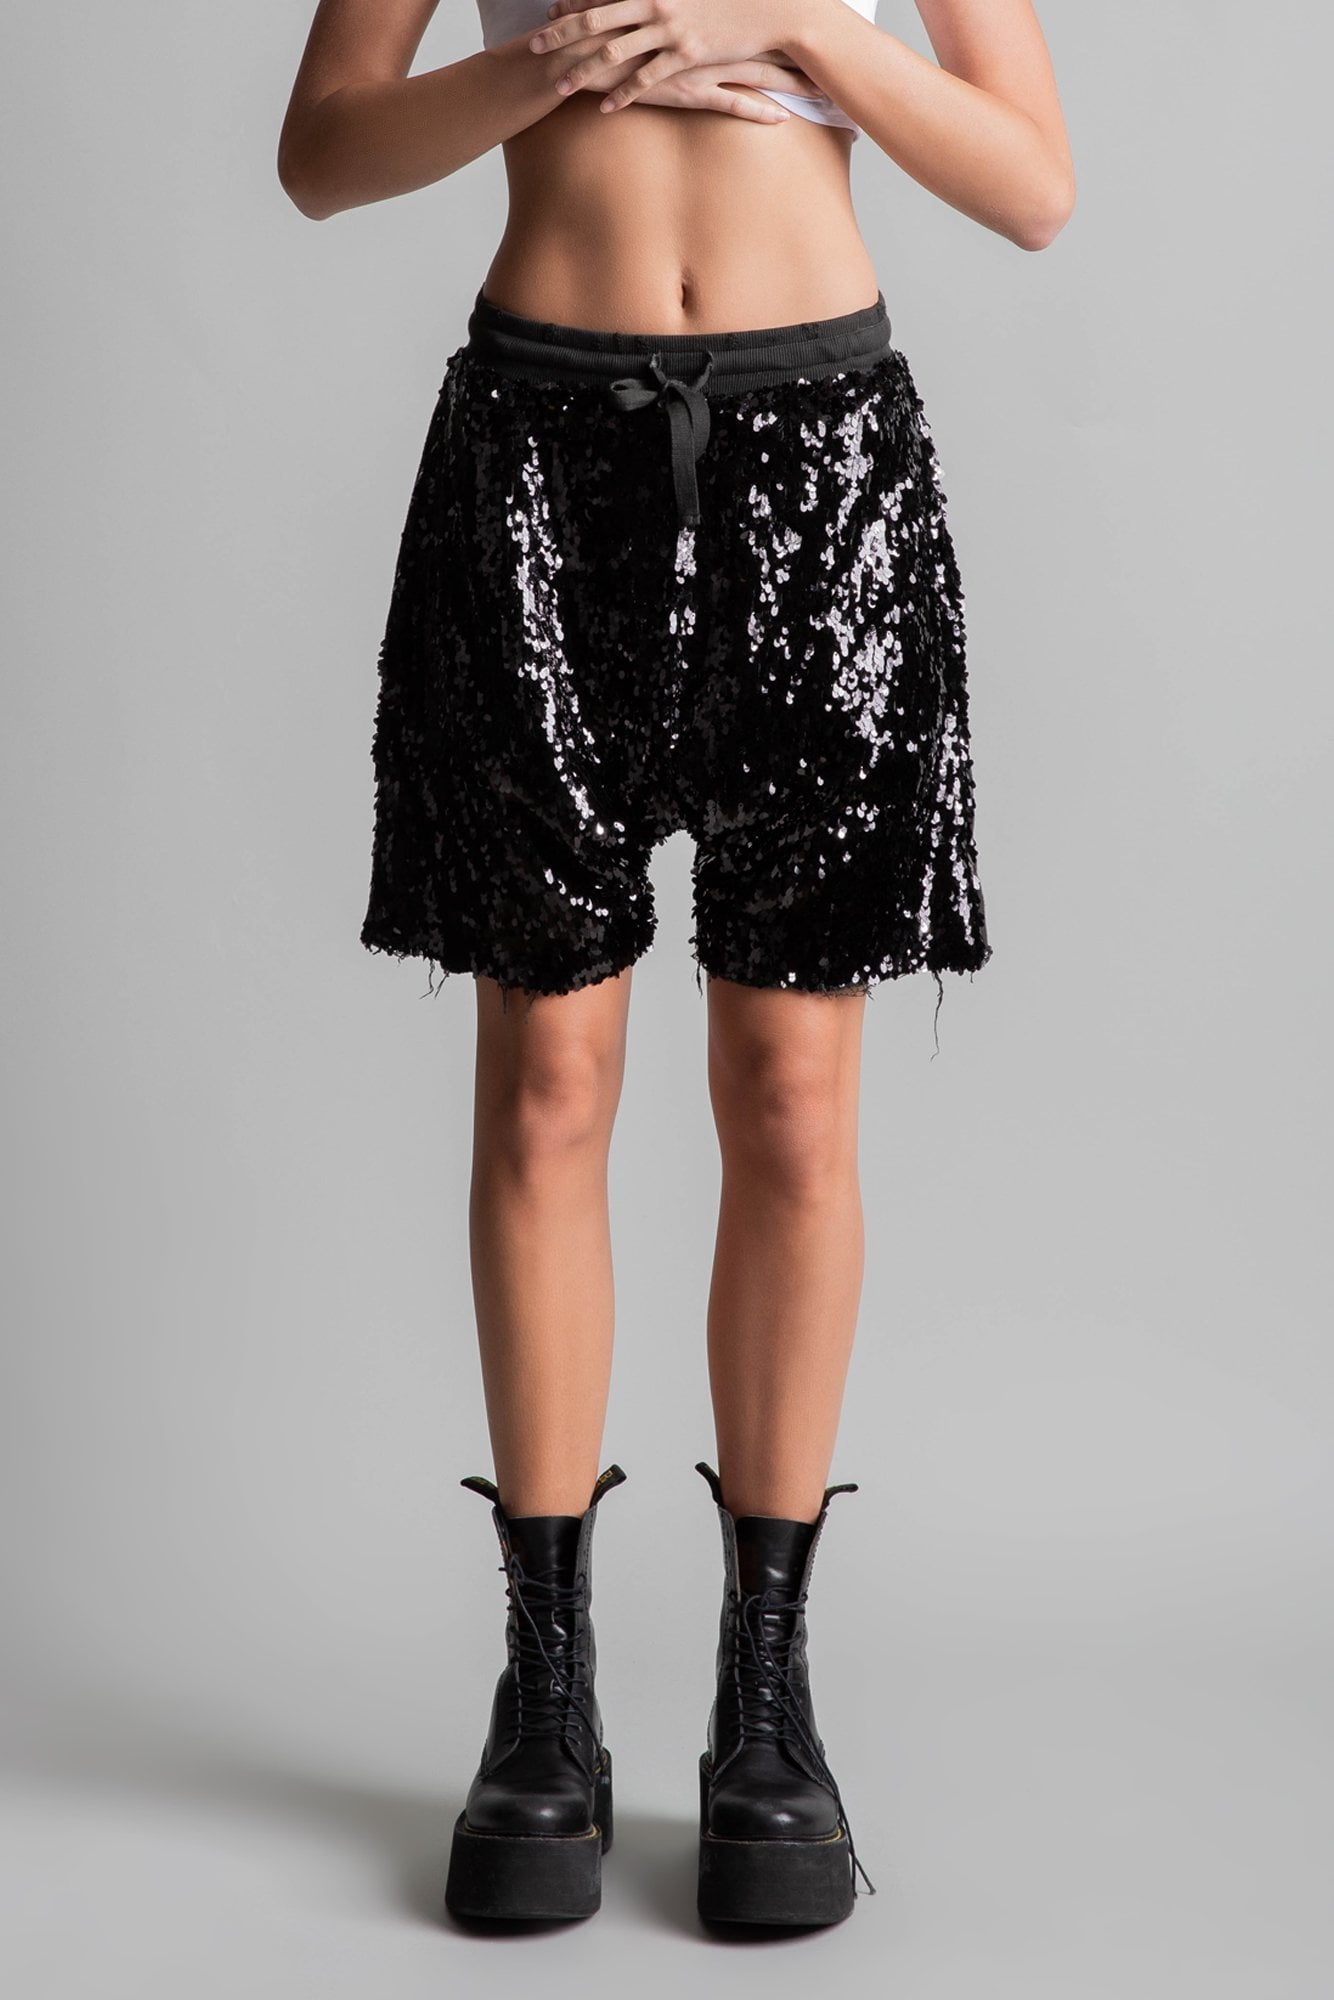 Sequin Harem Shorts - Black